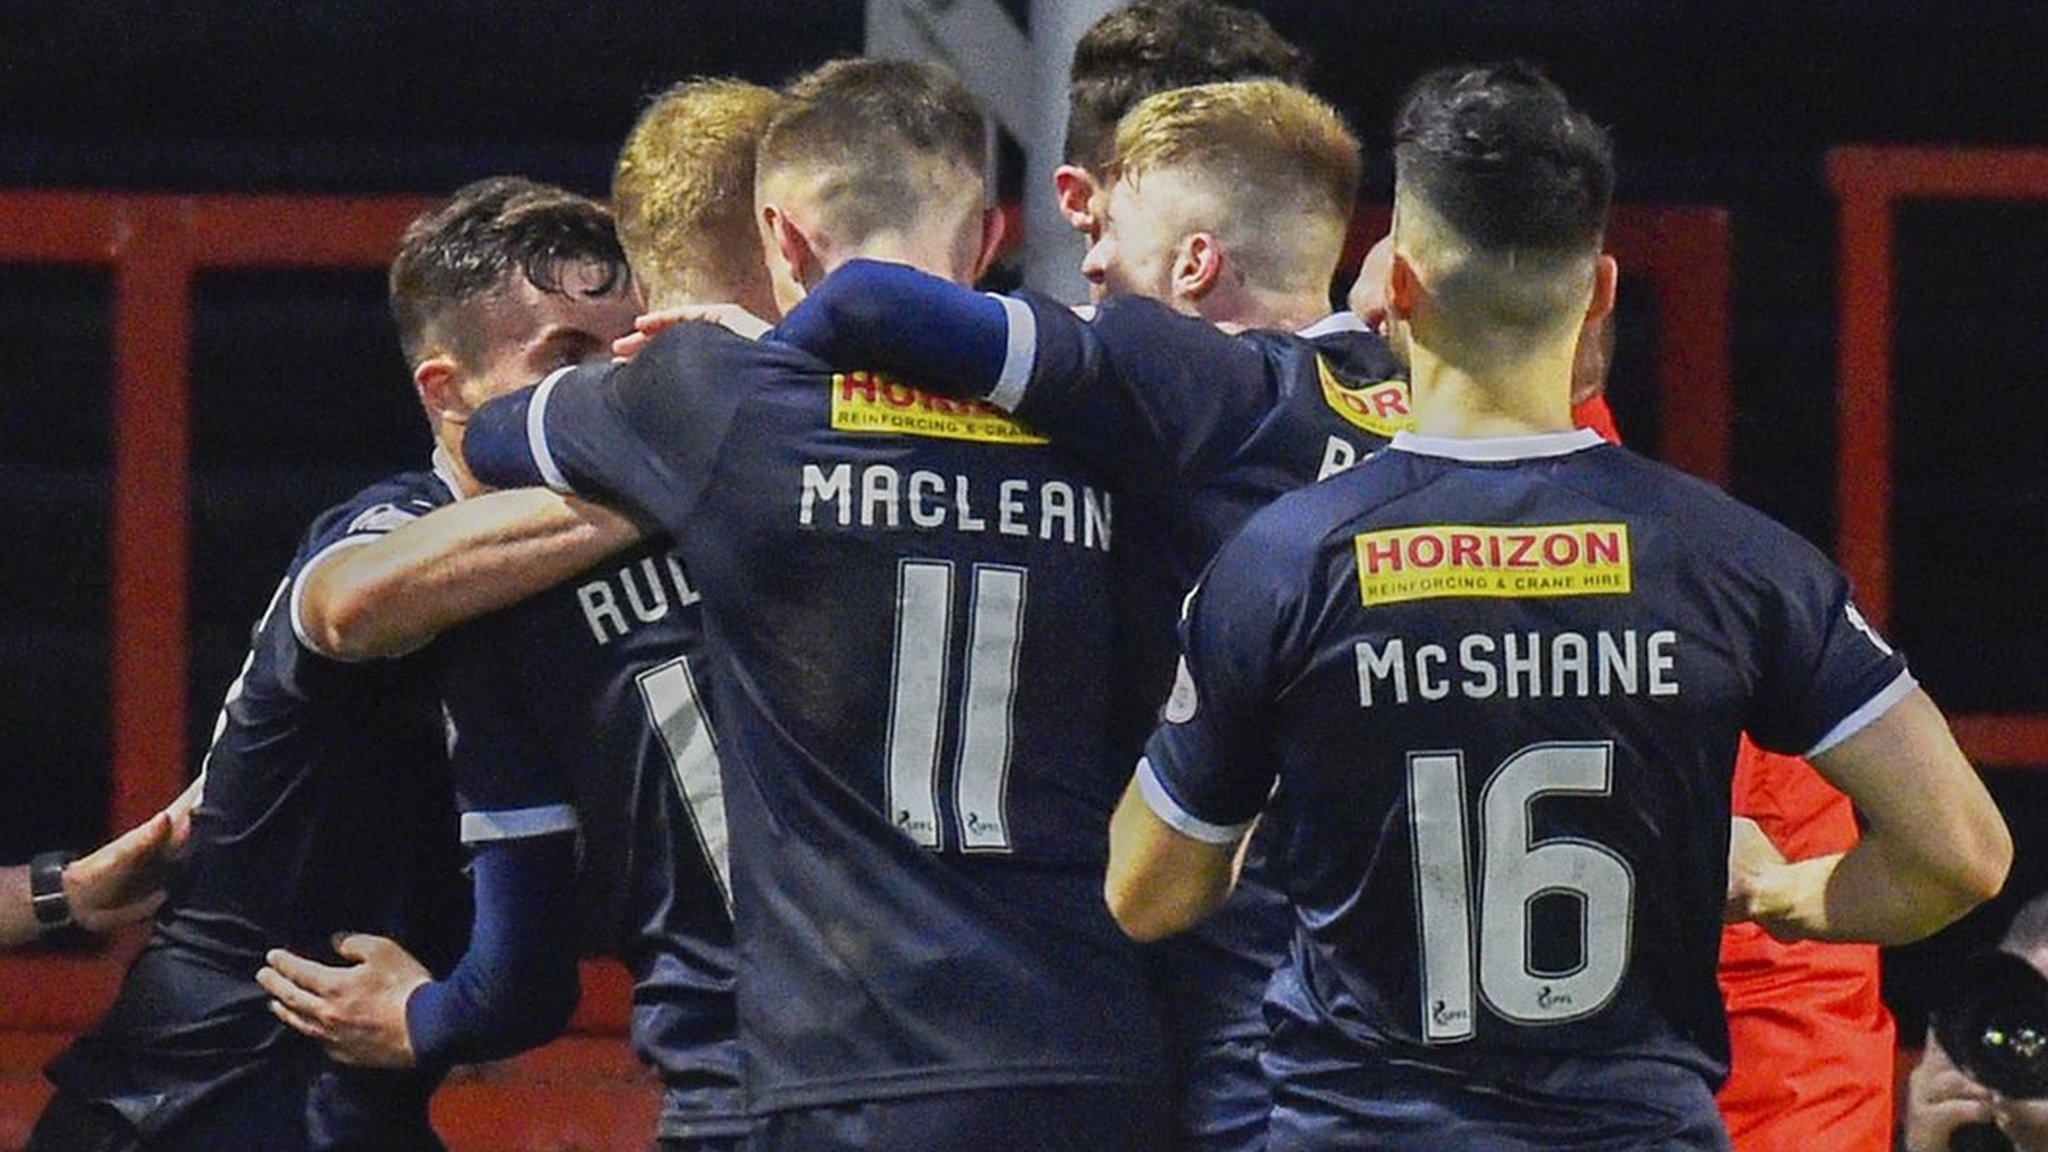 Partick Thistle 1-1 Falkirk: Rudden strike earns visitors vital point